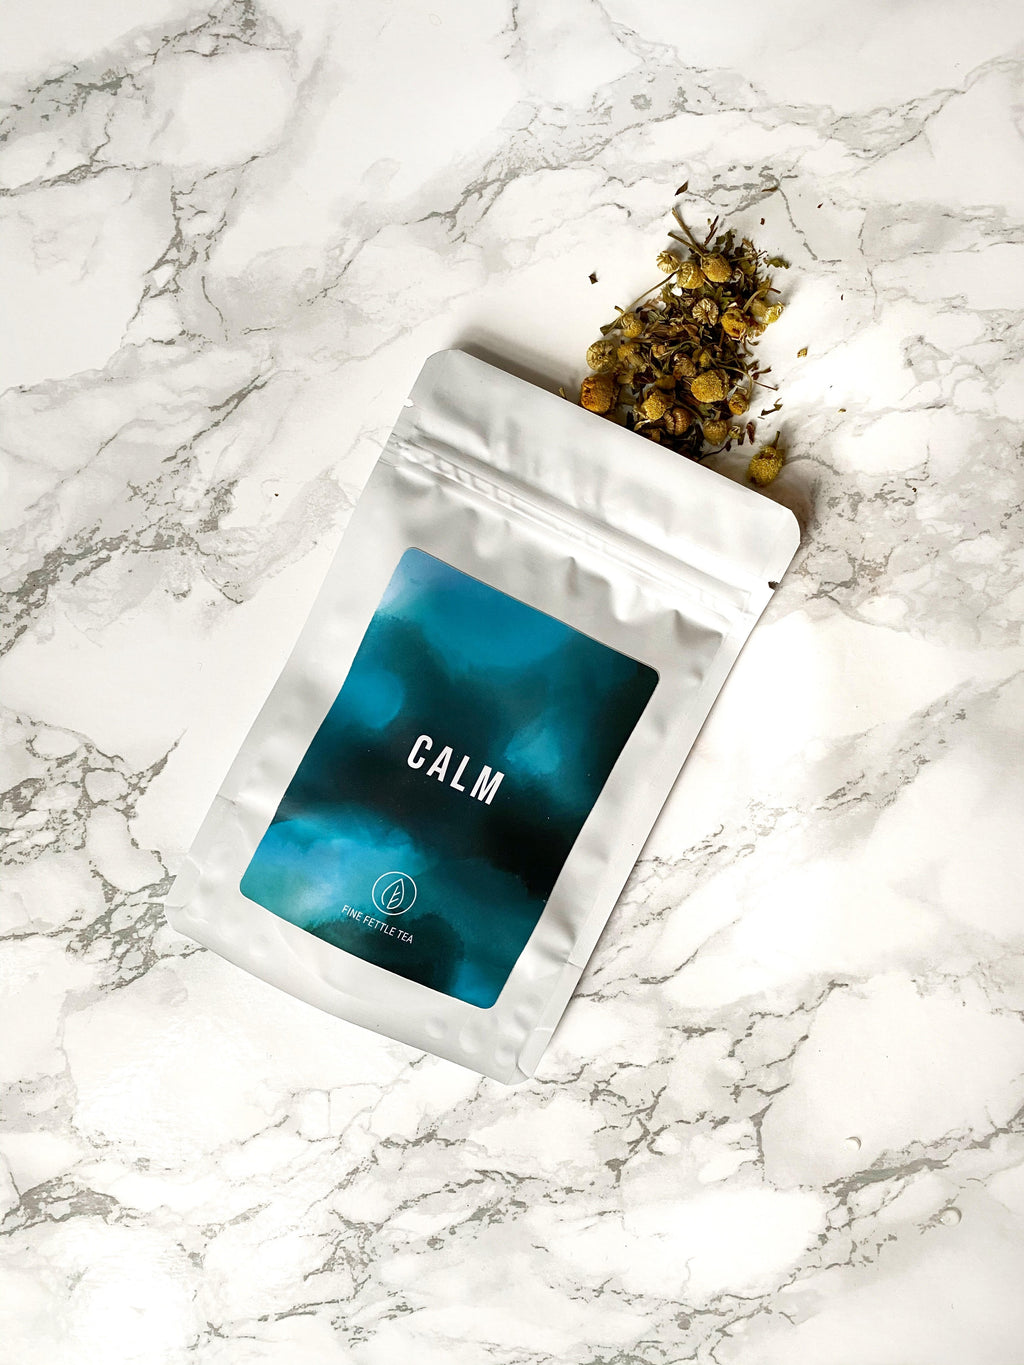 CALM Wellness Tea